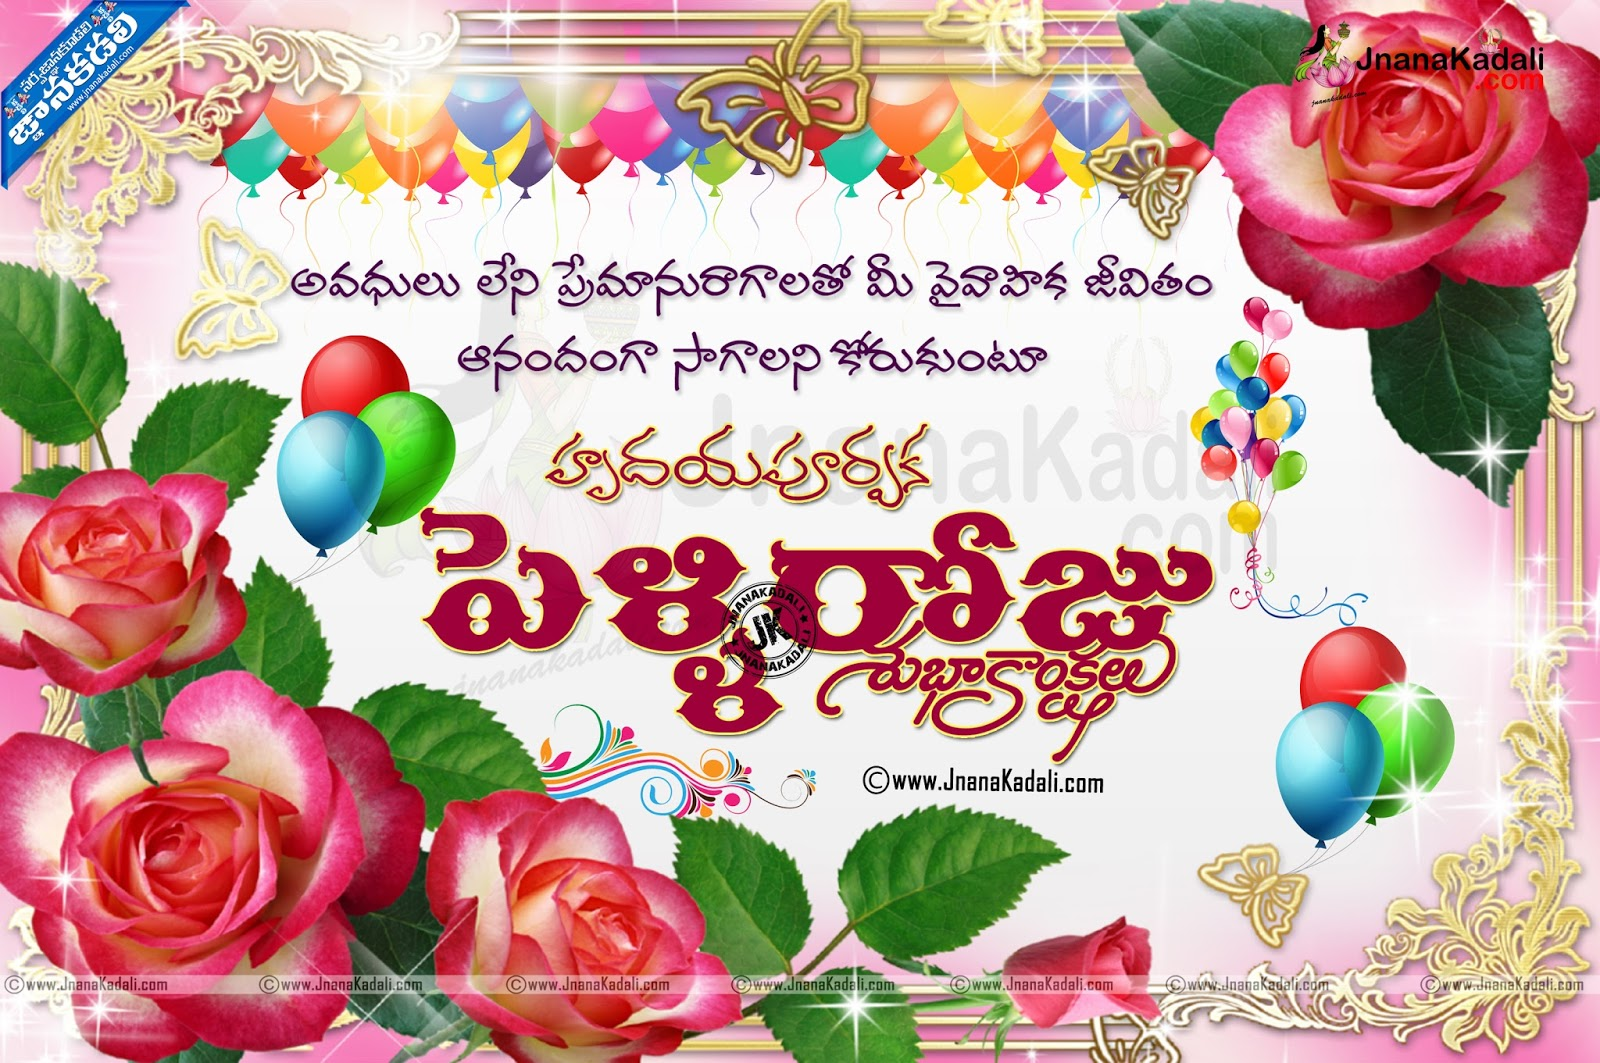 Marriage day telugu wishes greetings sms quotes images jnana best telugu marriages day wishes nice telugu marriage day wishes m4hsunfo